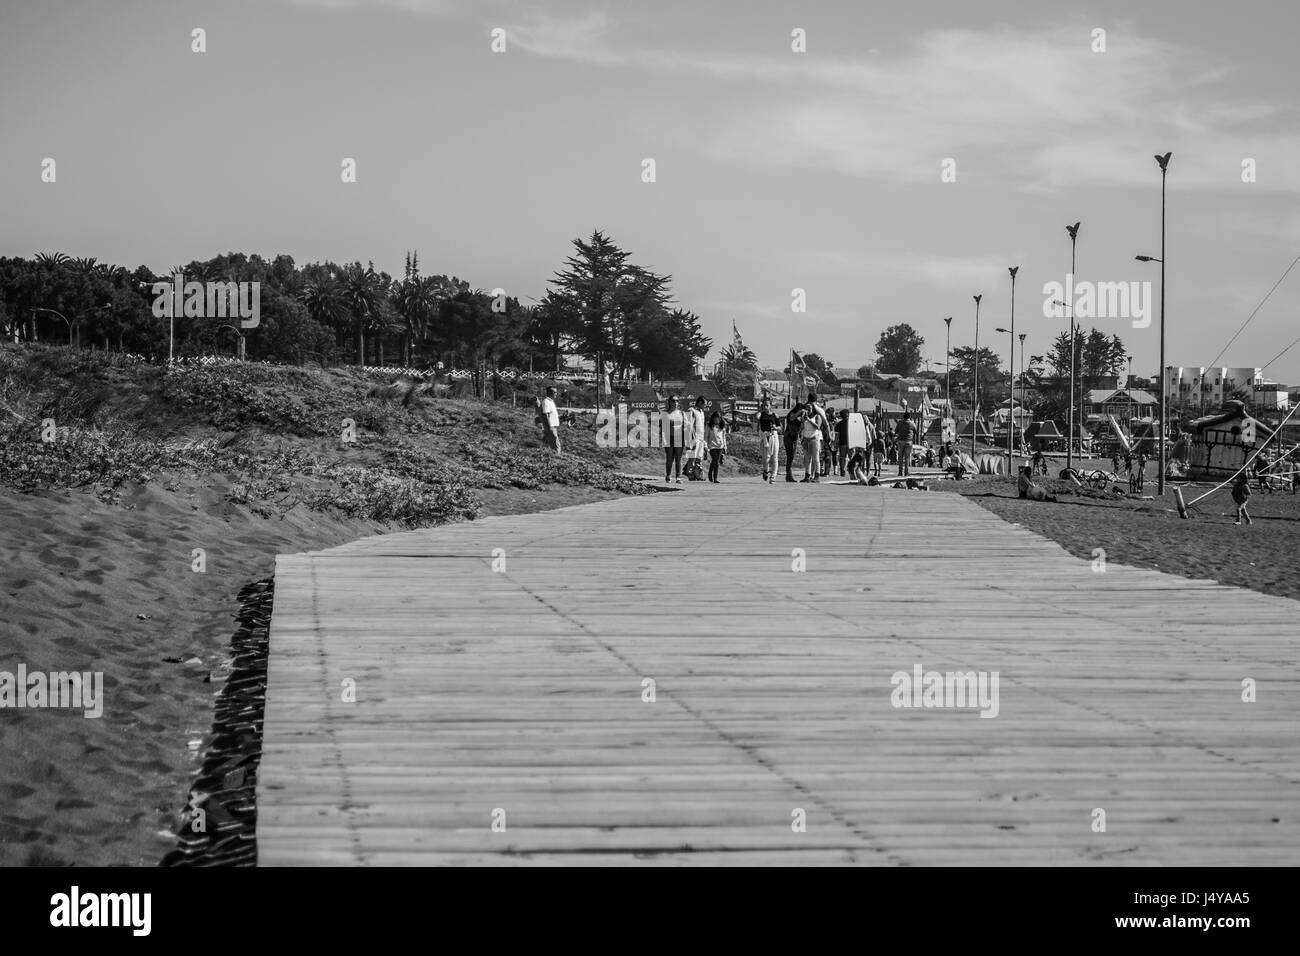 Flat view of a wooden pathway at the beach - Stock Image